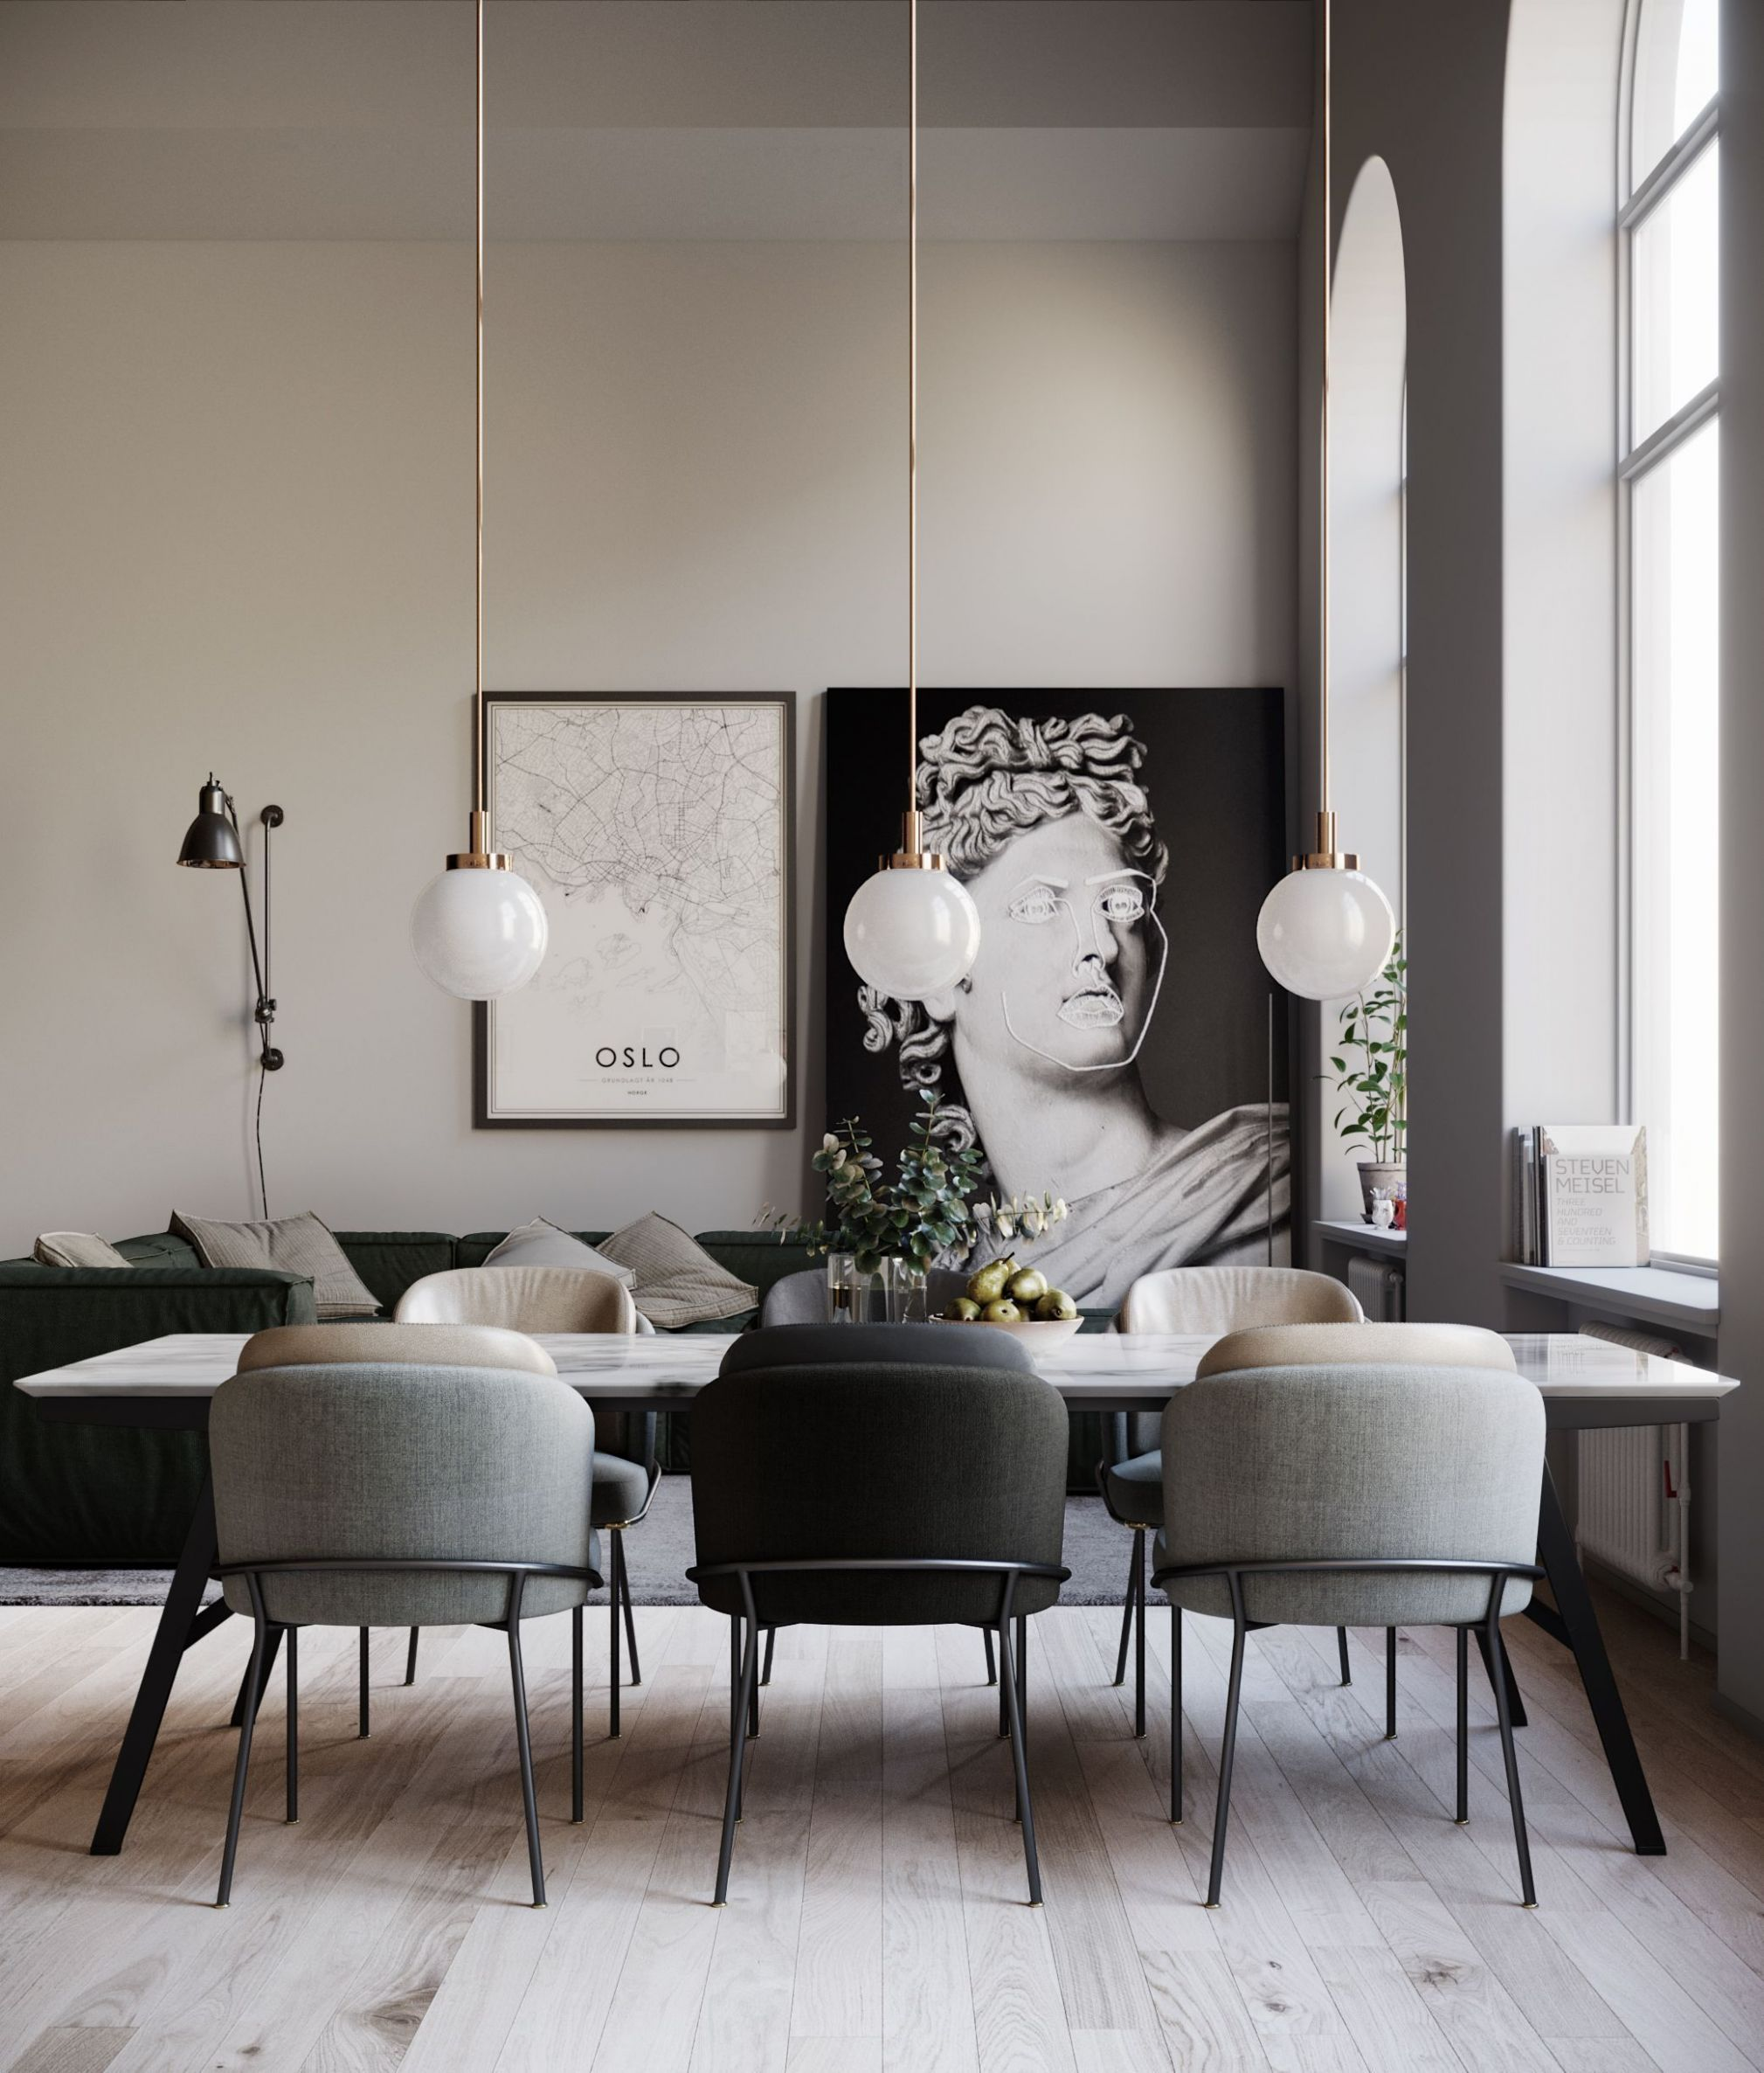 Dining Room decor ideas - modern contemporary style with natural ...